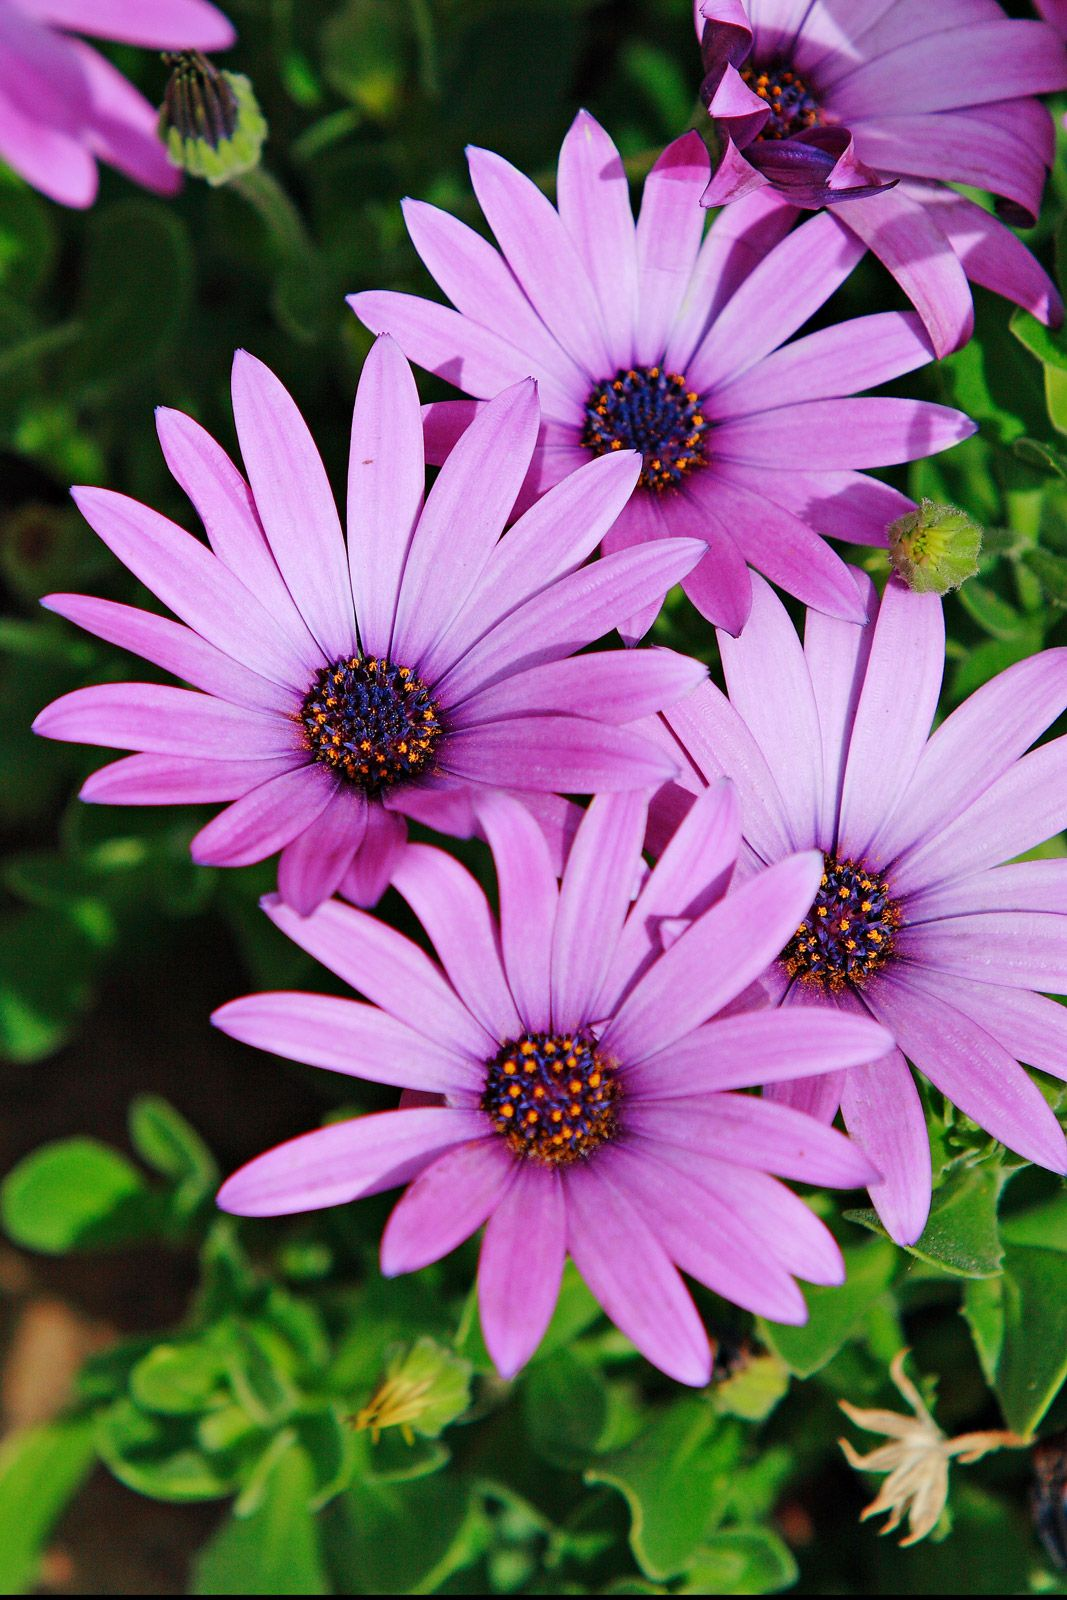 colorful daisy flowers african daisies purple in color and